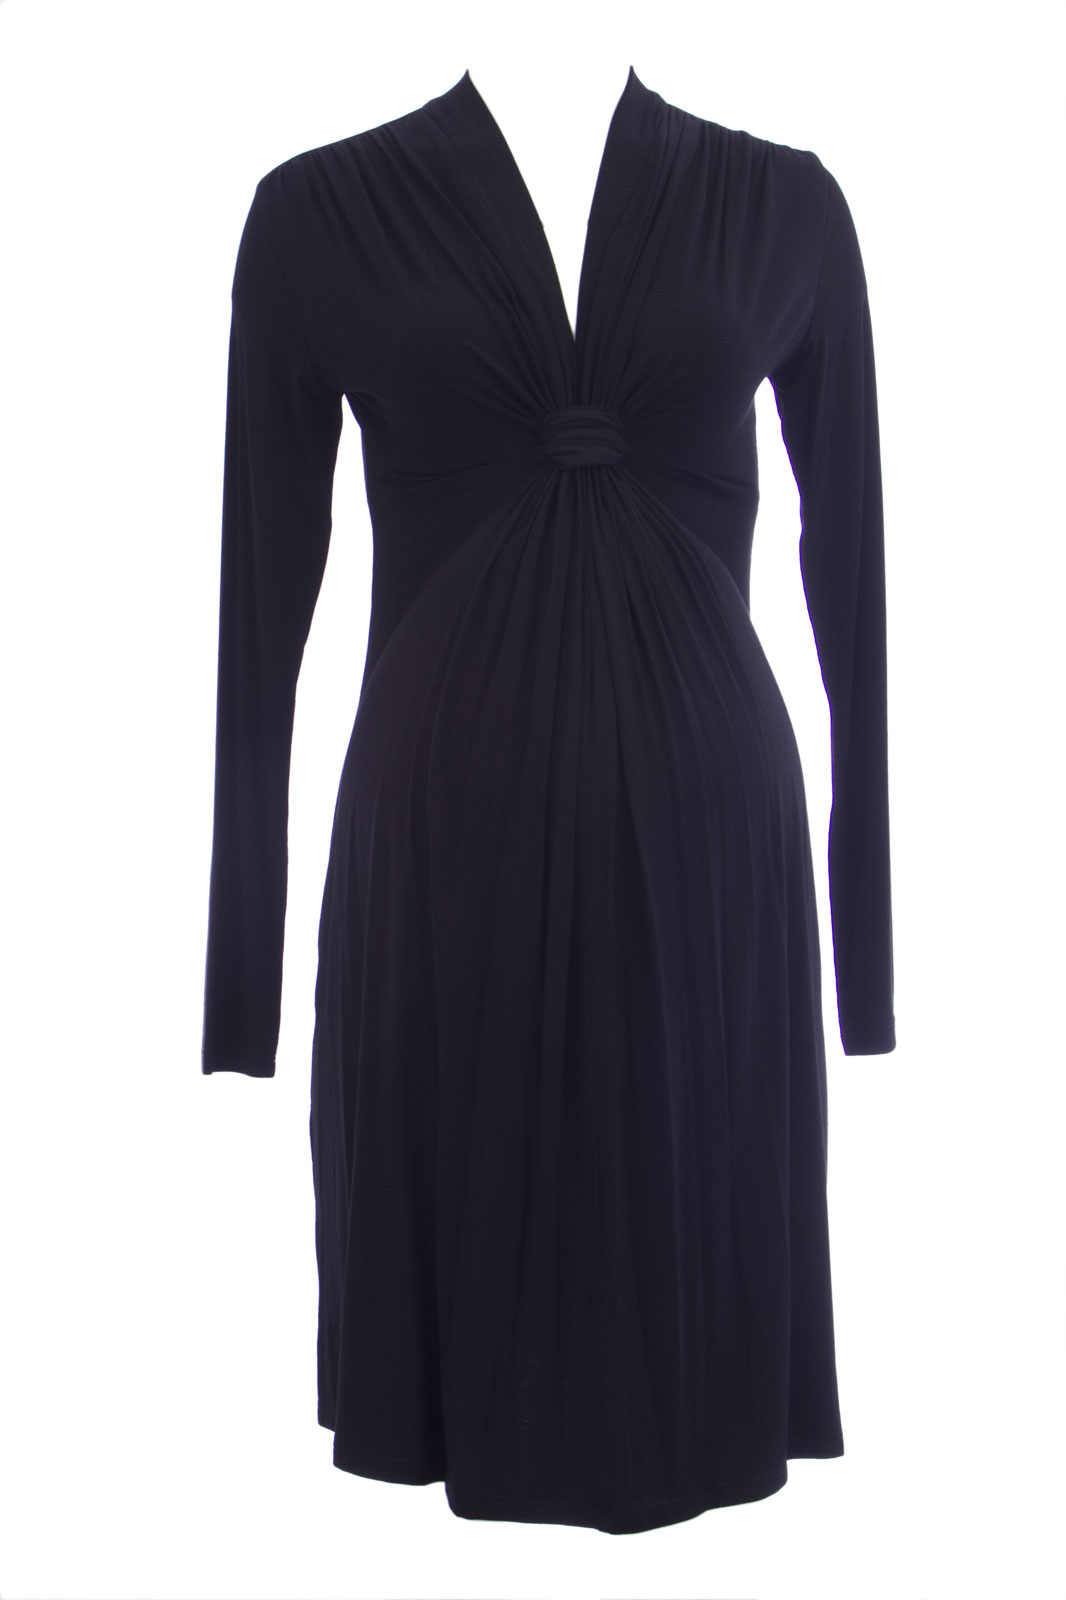 Olian maternity womens knot accent long sleeve dress 125 nwt ebay olian maternity womens black knot accent long sleeve dress s 125 nwt ombrellifo Choice Image